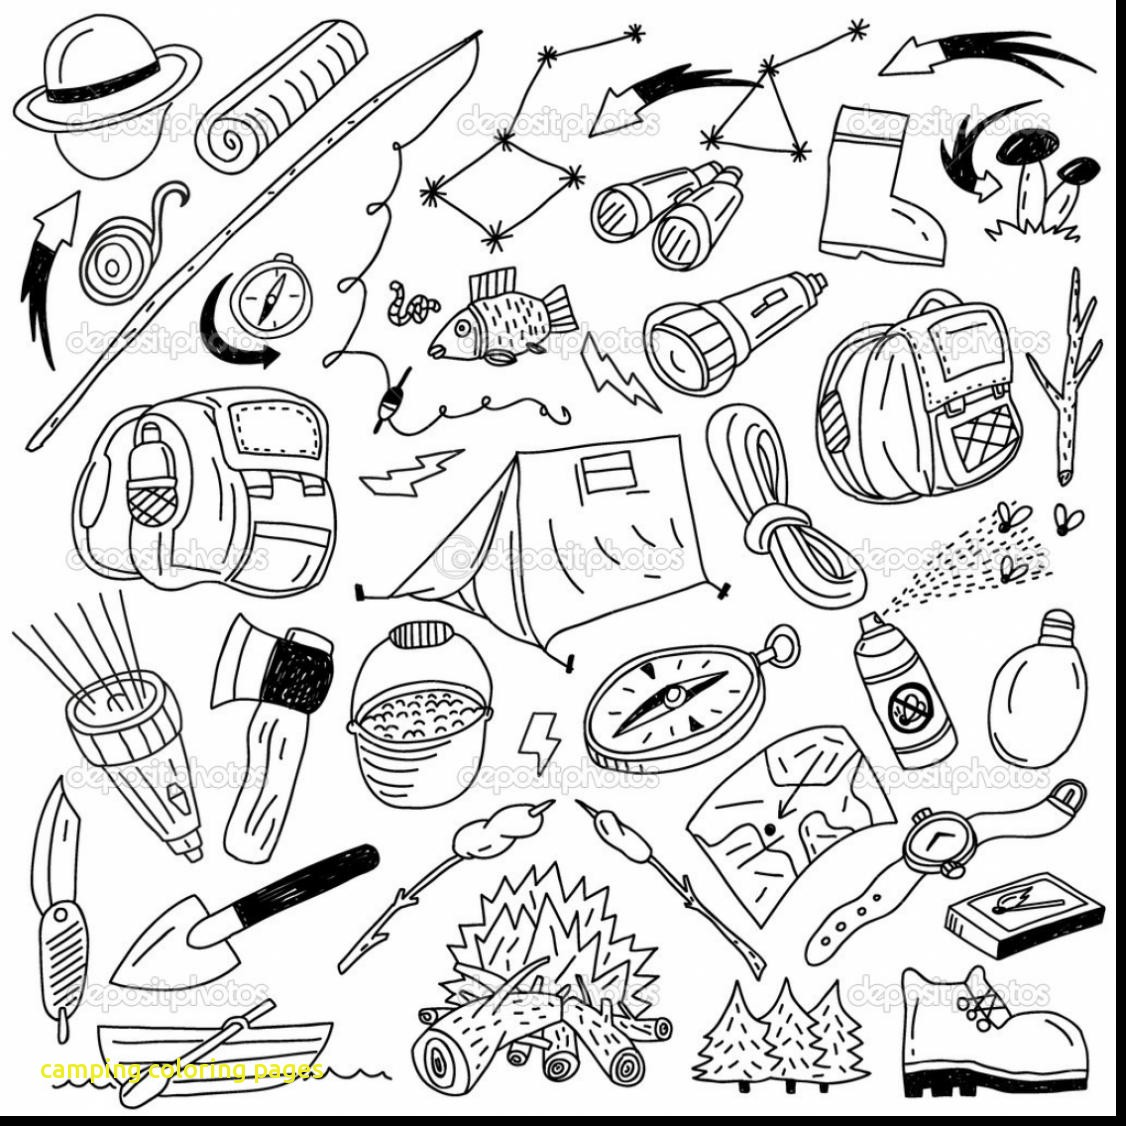 1126x1126 Camping Coloring Pages With Amazing Camping Coloring Pages